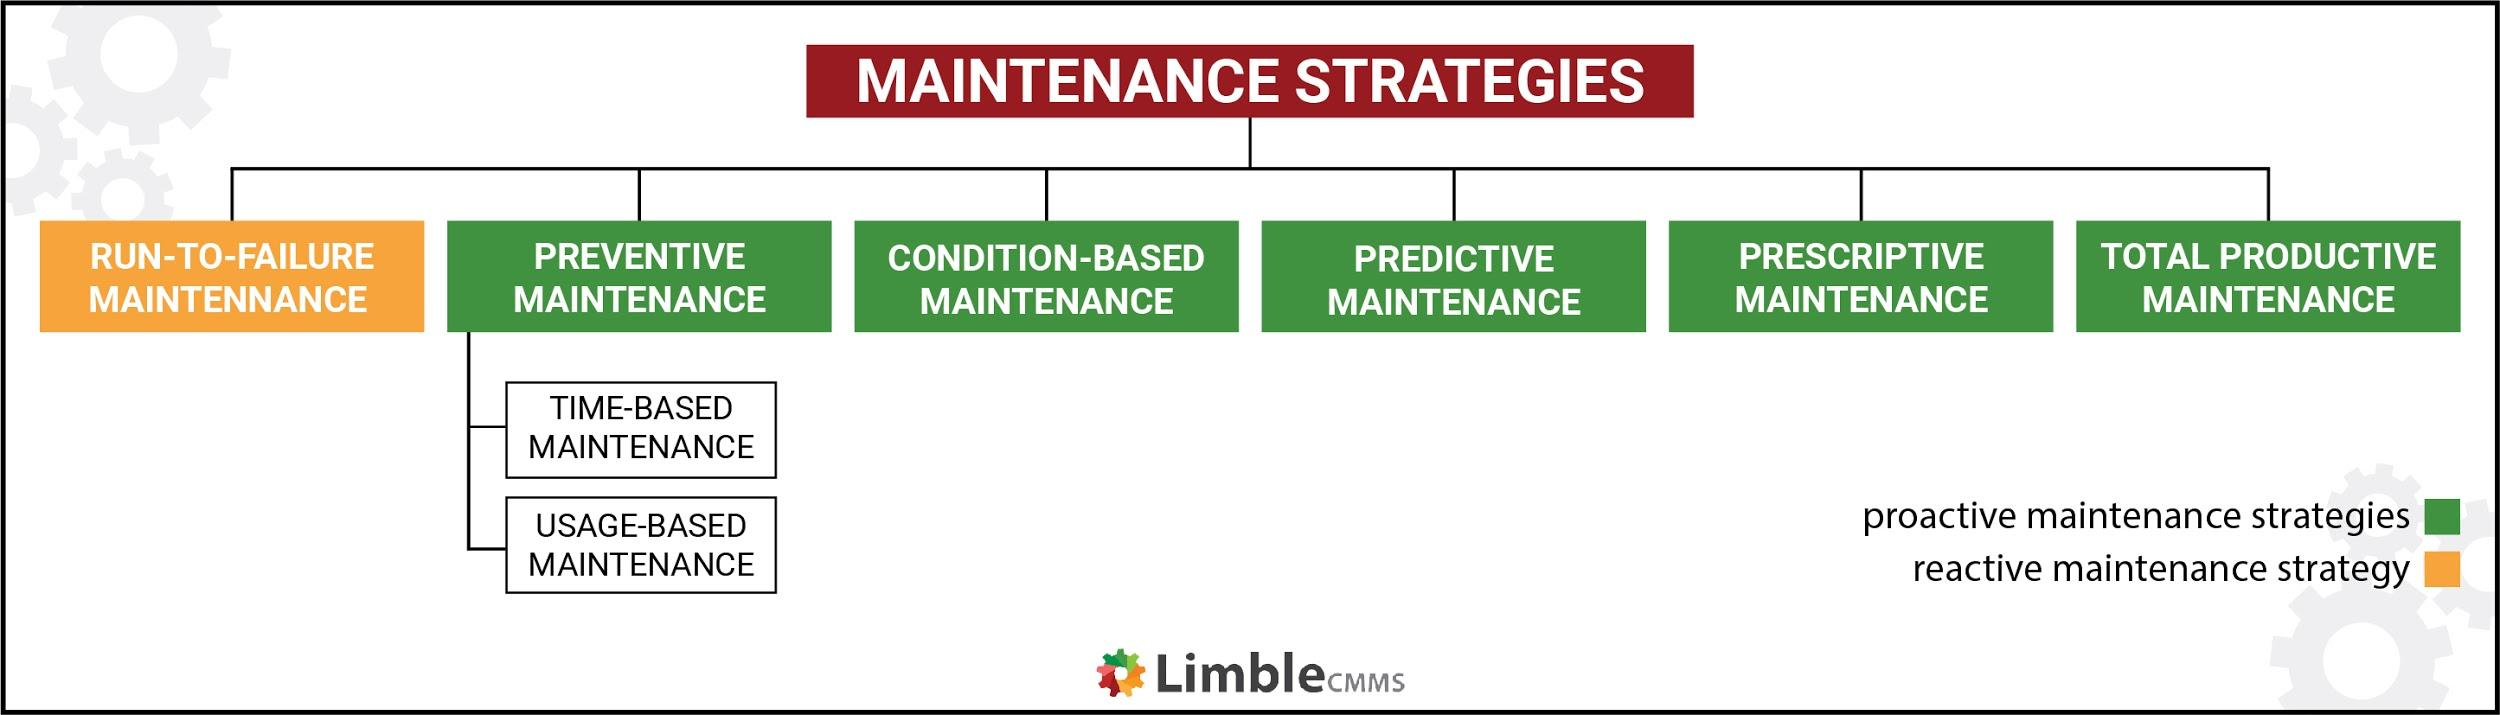 hierarchy of maintenance strategies